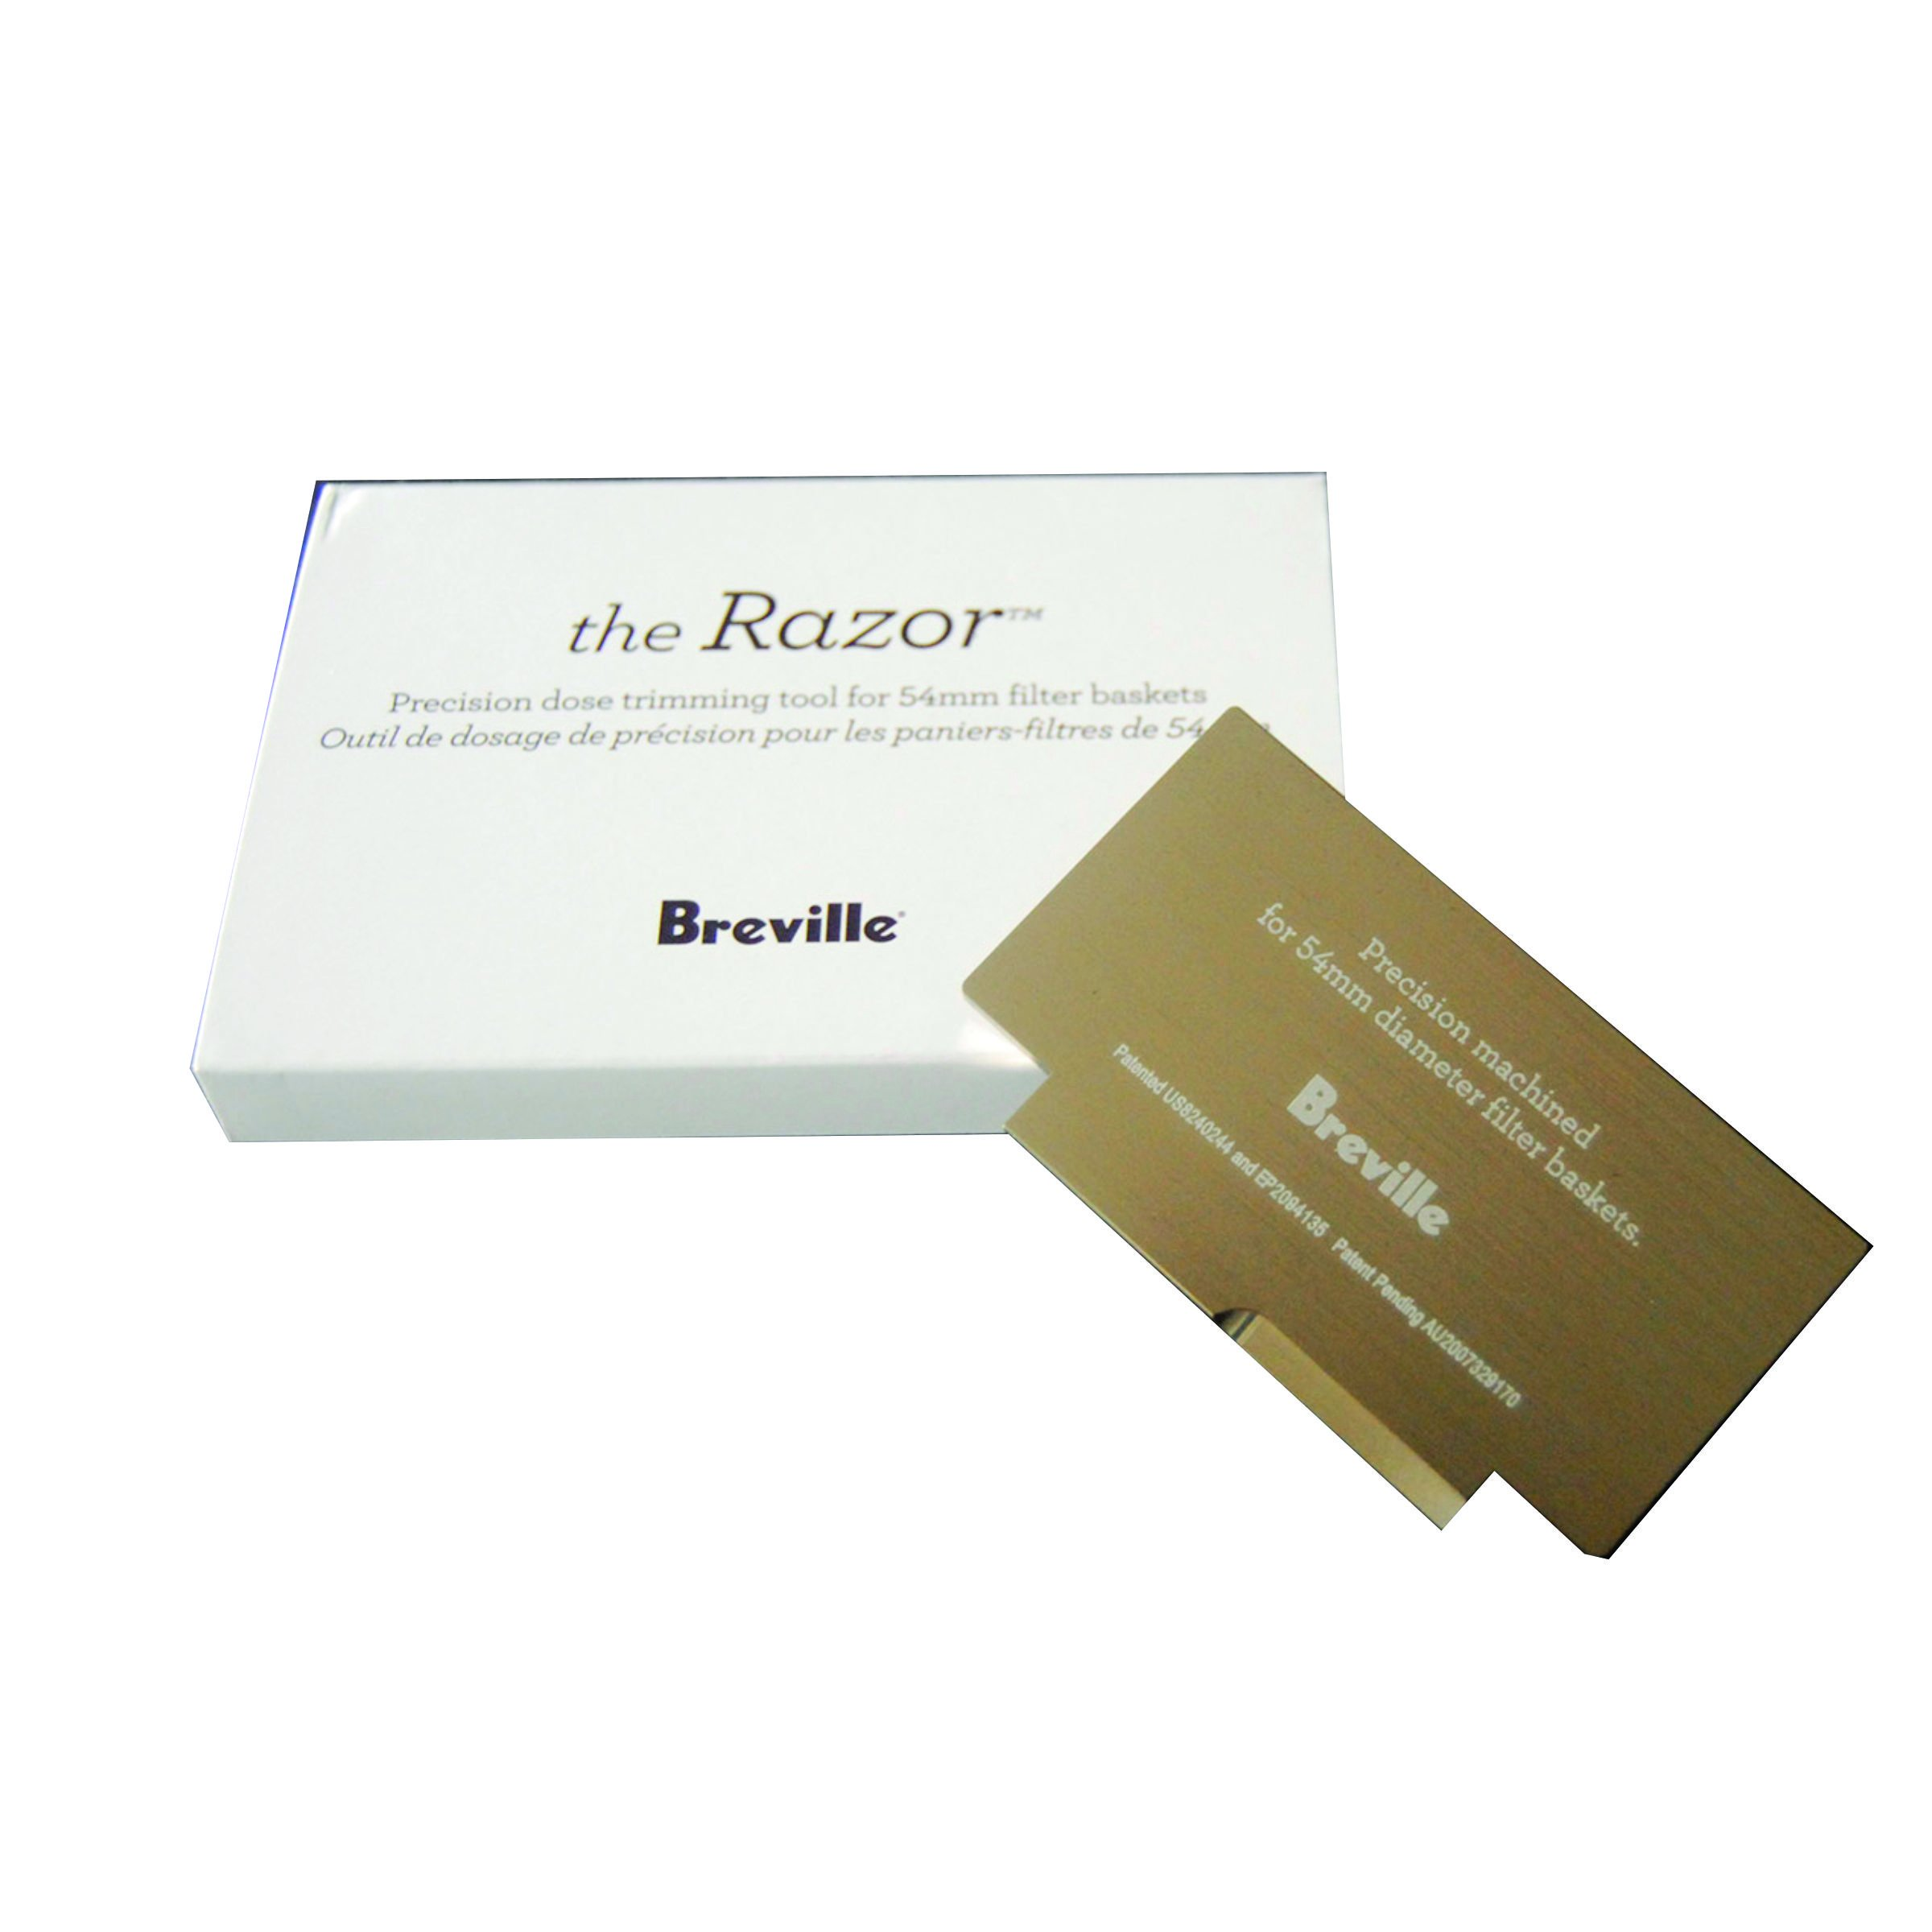 Breville The Razor Precision Dose Trimming Tool For 54mm Filter Baskets